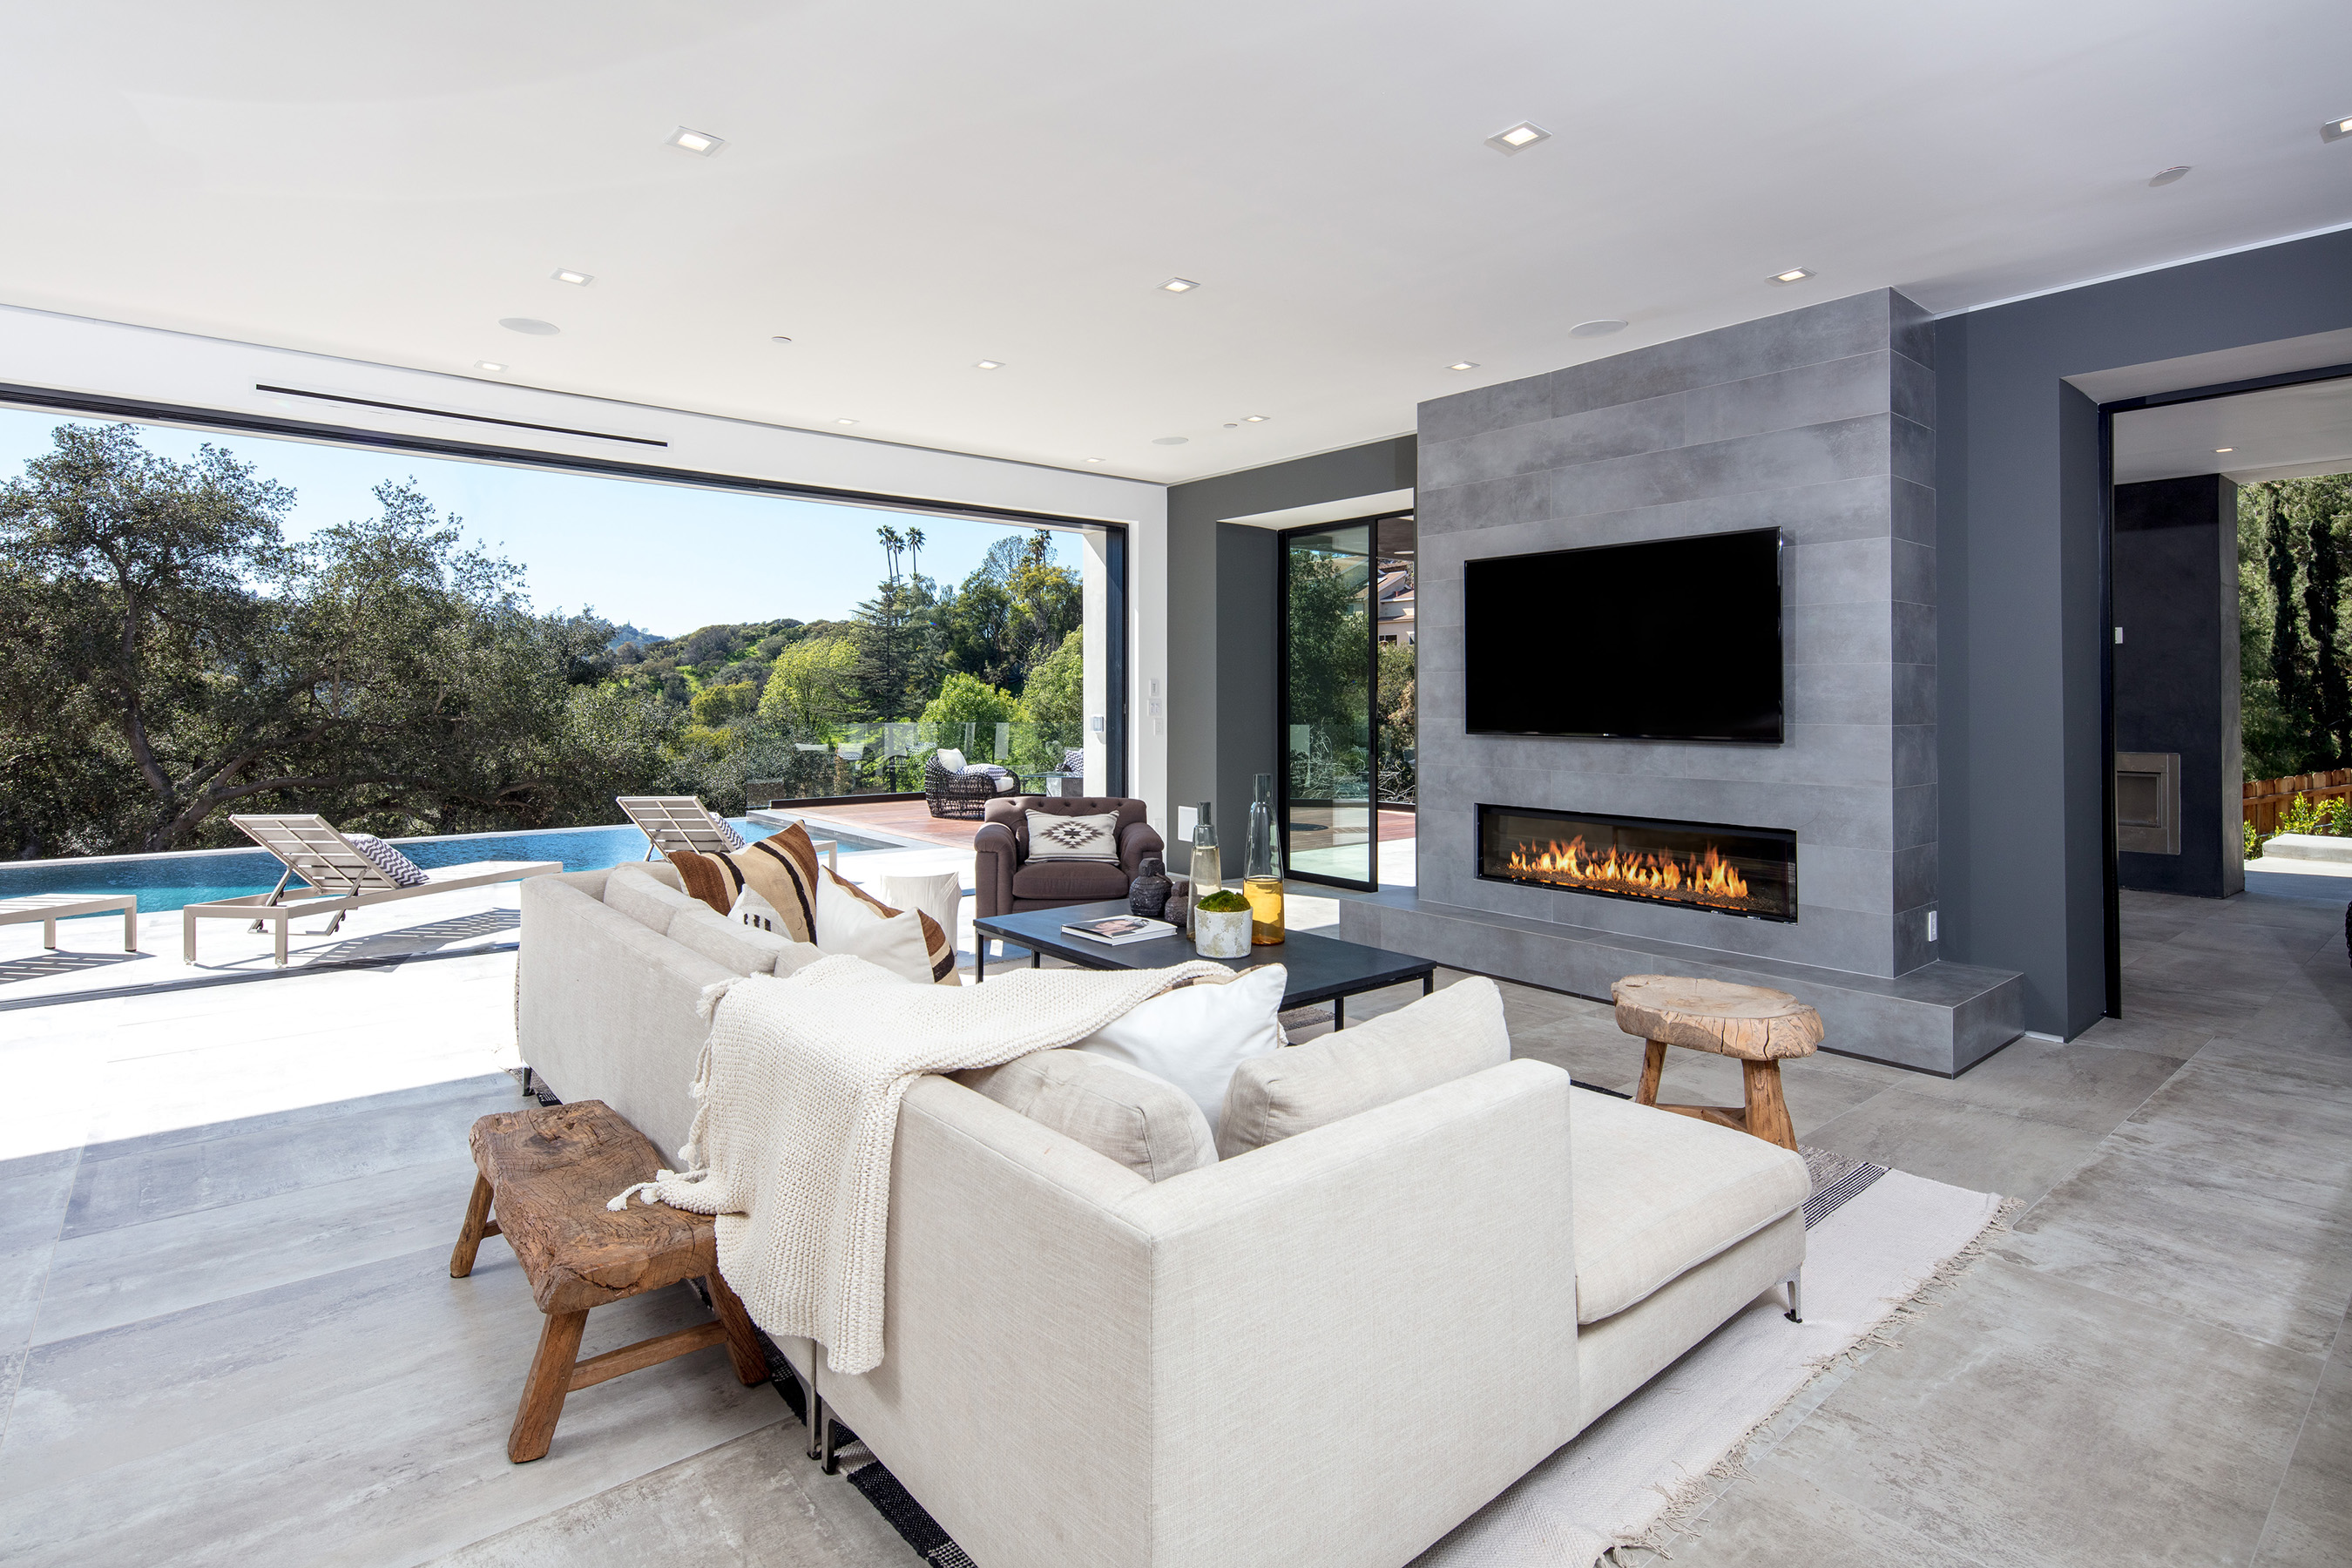 This one-of-a-kind architectural home is located in the celebrity driven area of Studio City